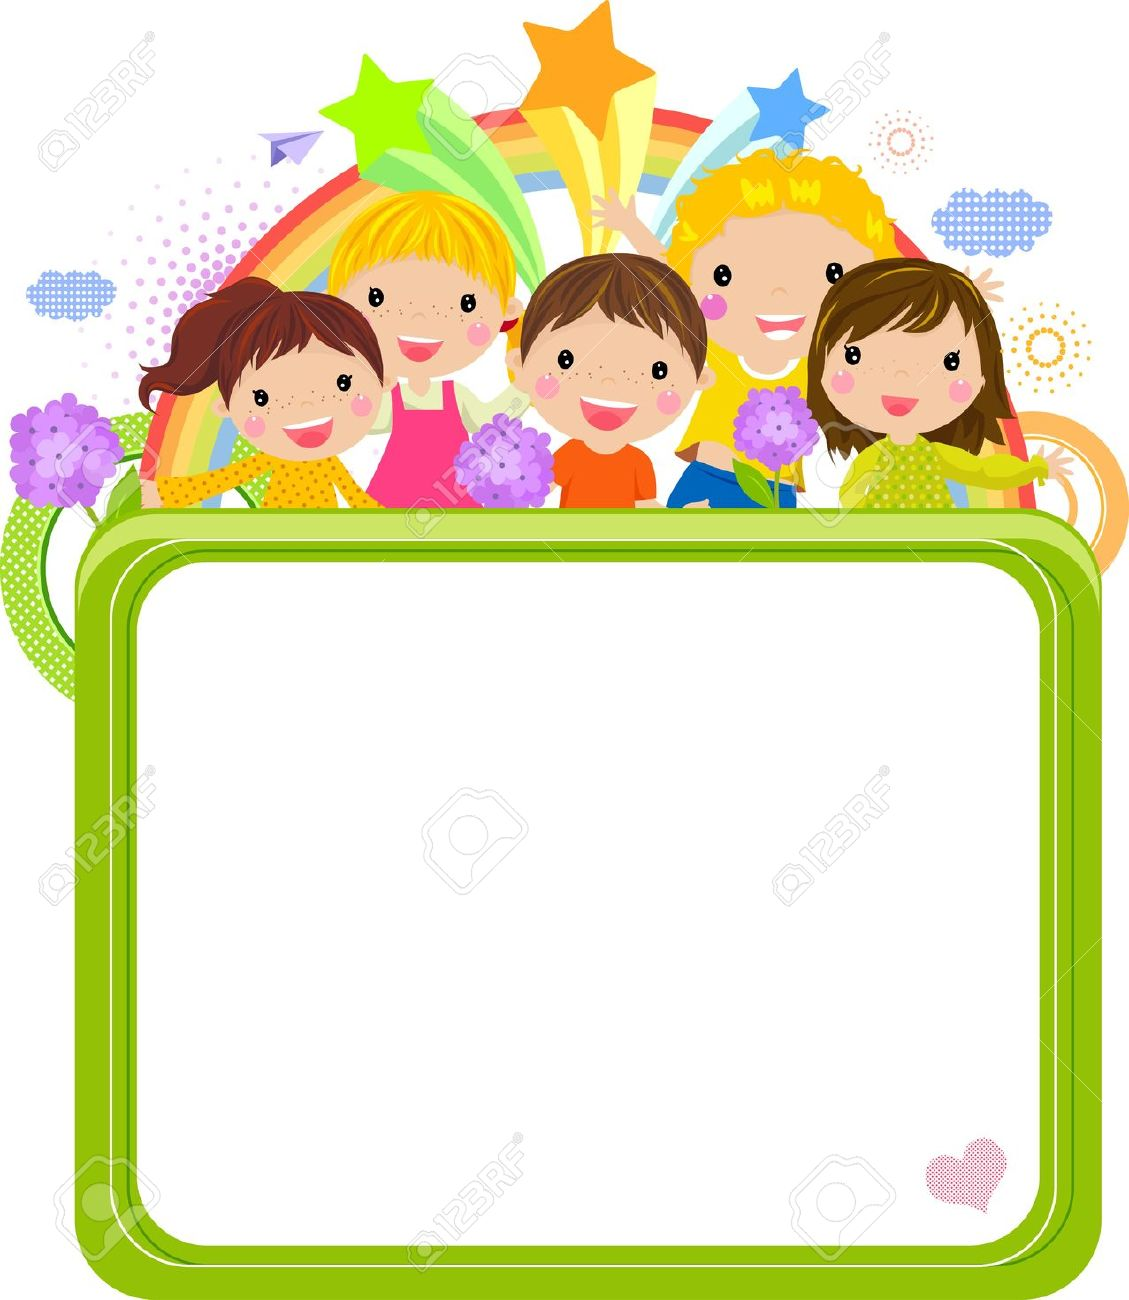 Jpeg school border clipart png library stock Cute school border clipart - ClipartFest png library stock